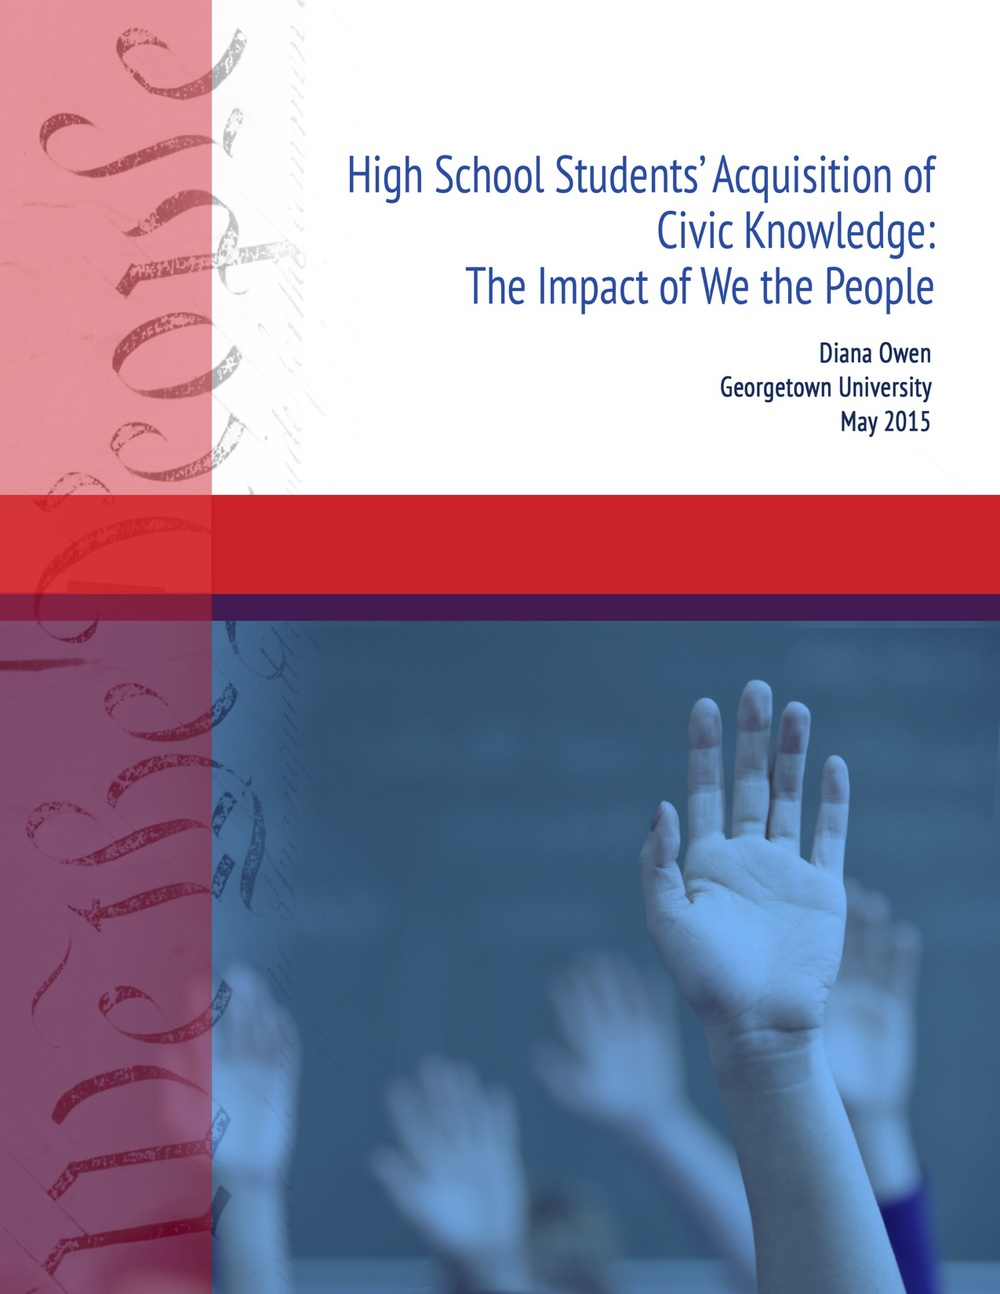 A cover page for a Georgetown University and Center for Civic Education (CCE) report on knowledge acquisition in We the People civic education classrooms. This design includes three thematic iterations, adorning the cover of two subsequent reports currently in progress. Access the full report, which I contributed to as a Research Assistant, on the CCE website.